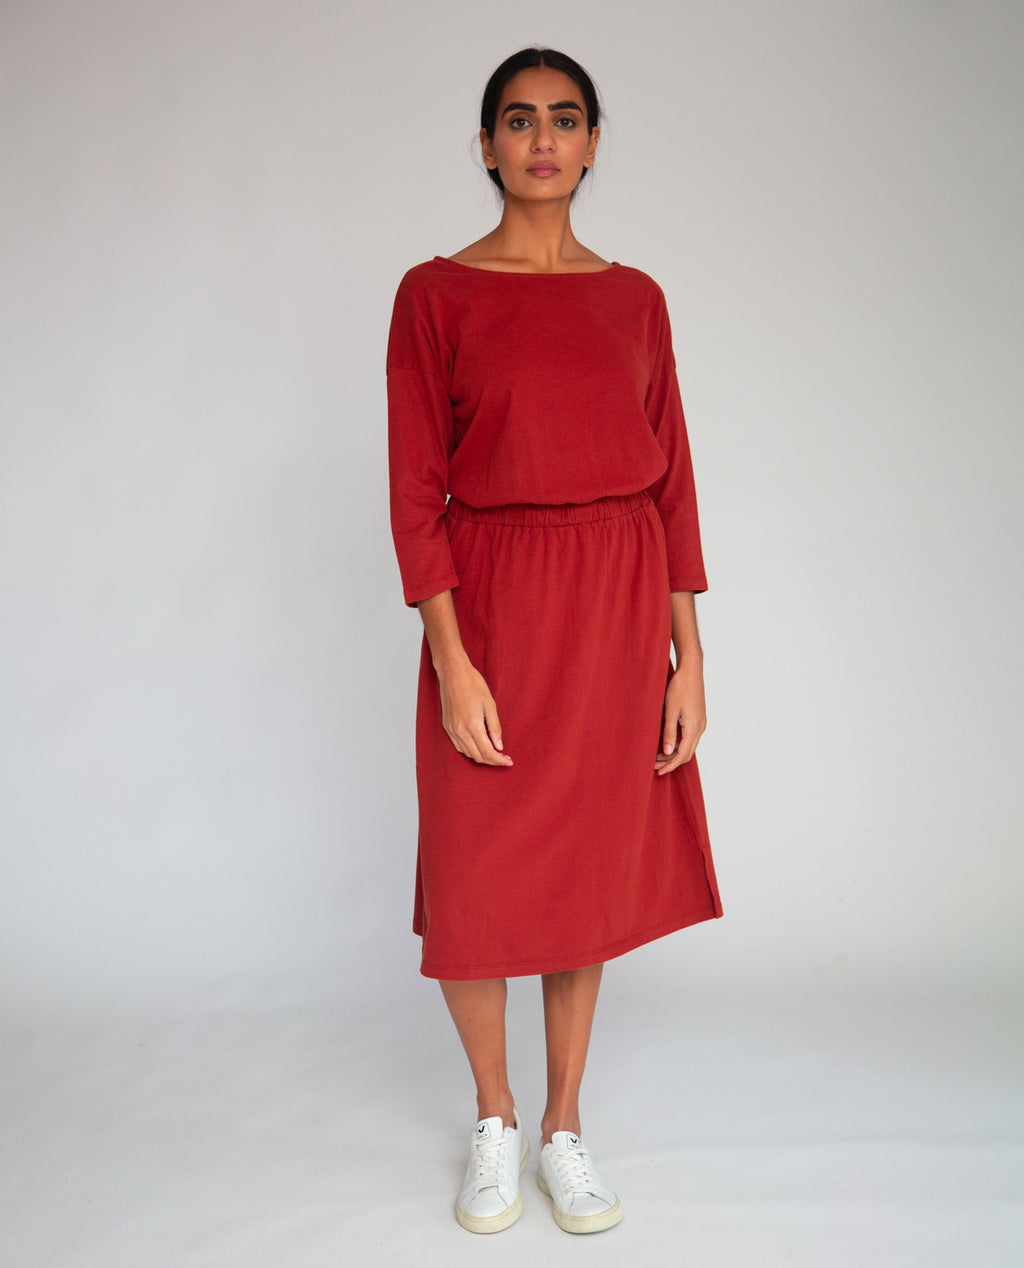 Bellamy Organic Cotton Dress In Rust